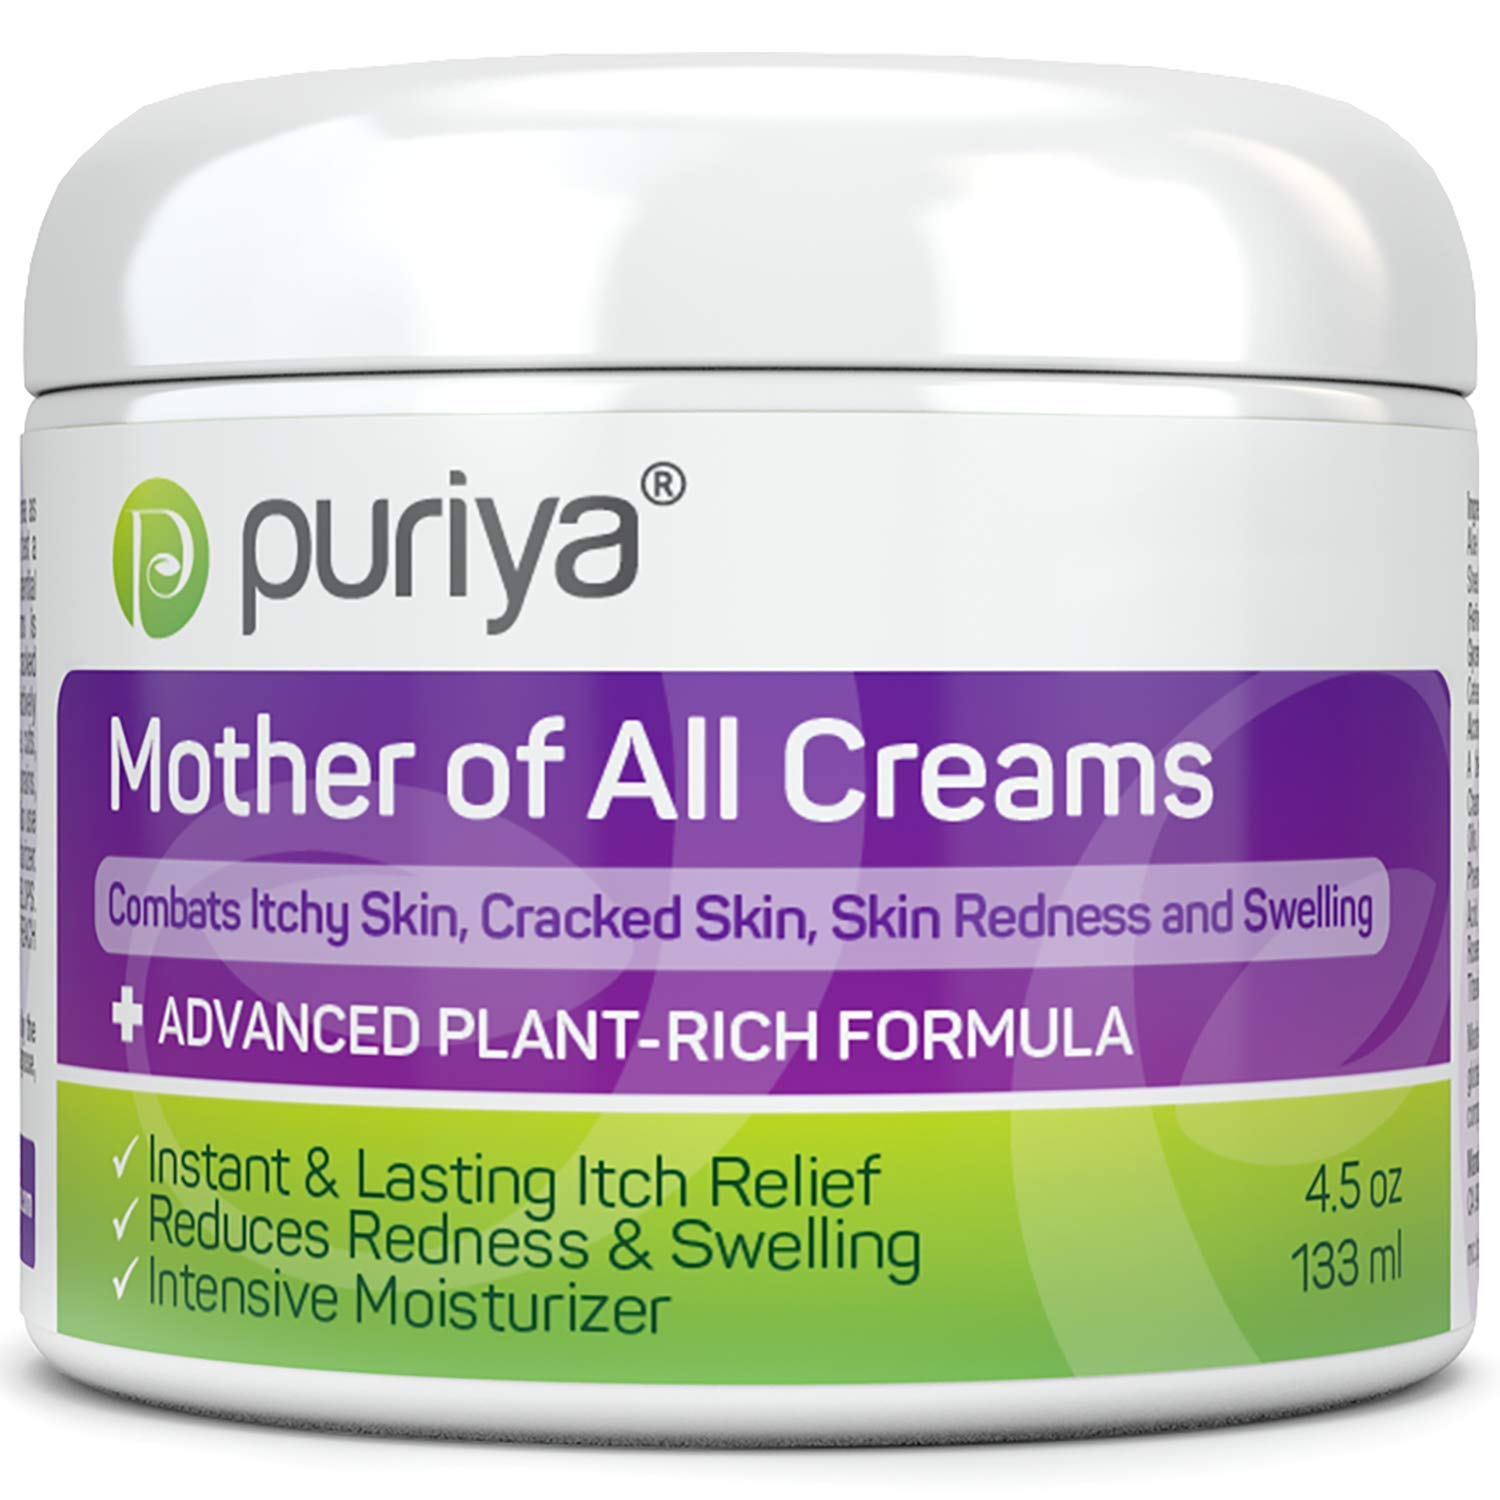 Puriya Dry Cracked Sensitive Skin Moisturizer -Award Winning - Trusted by 300,000 Families - Plant Based Instant Lasting Relief. Hydrates and Softens Rough Skin. Intensive Body, Hand, Foot, Face Cream by Puriya